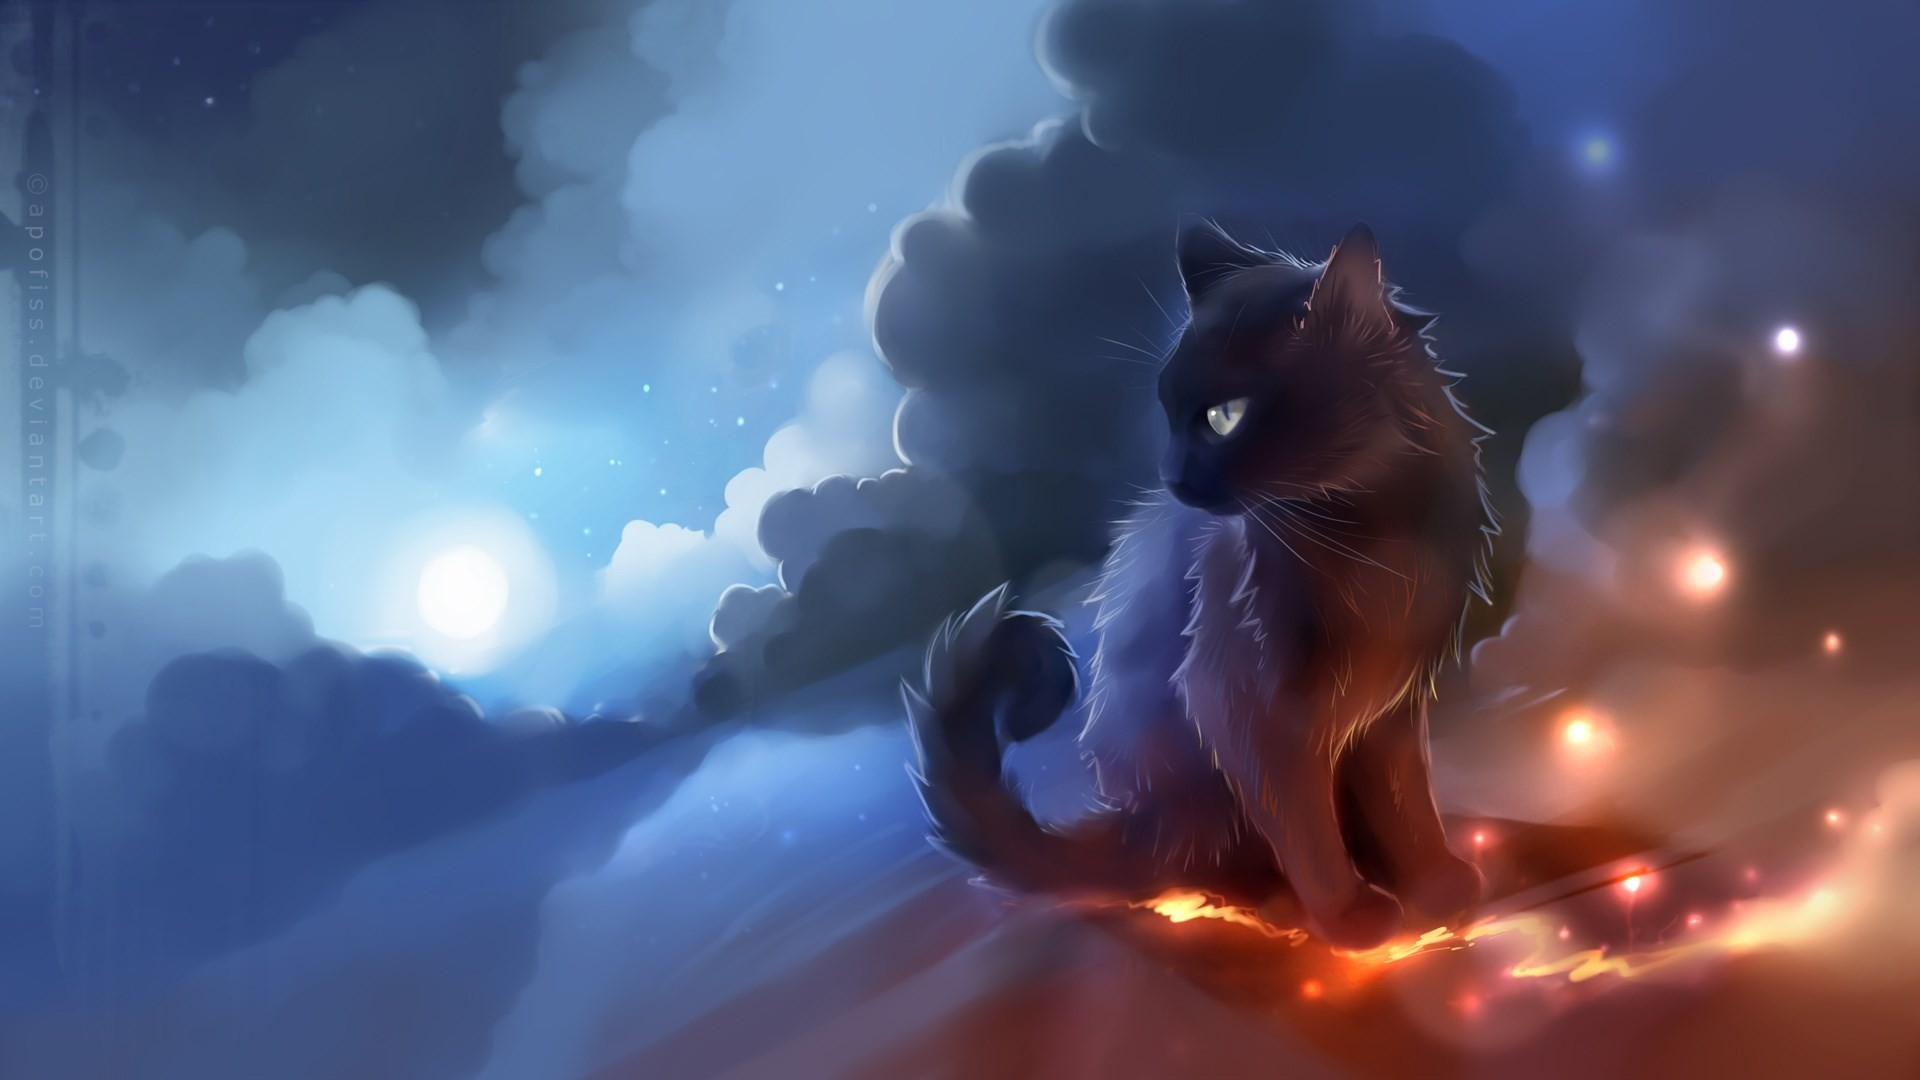 1920x1080 anime warrior cat wallpaper widescreeen